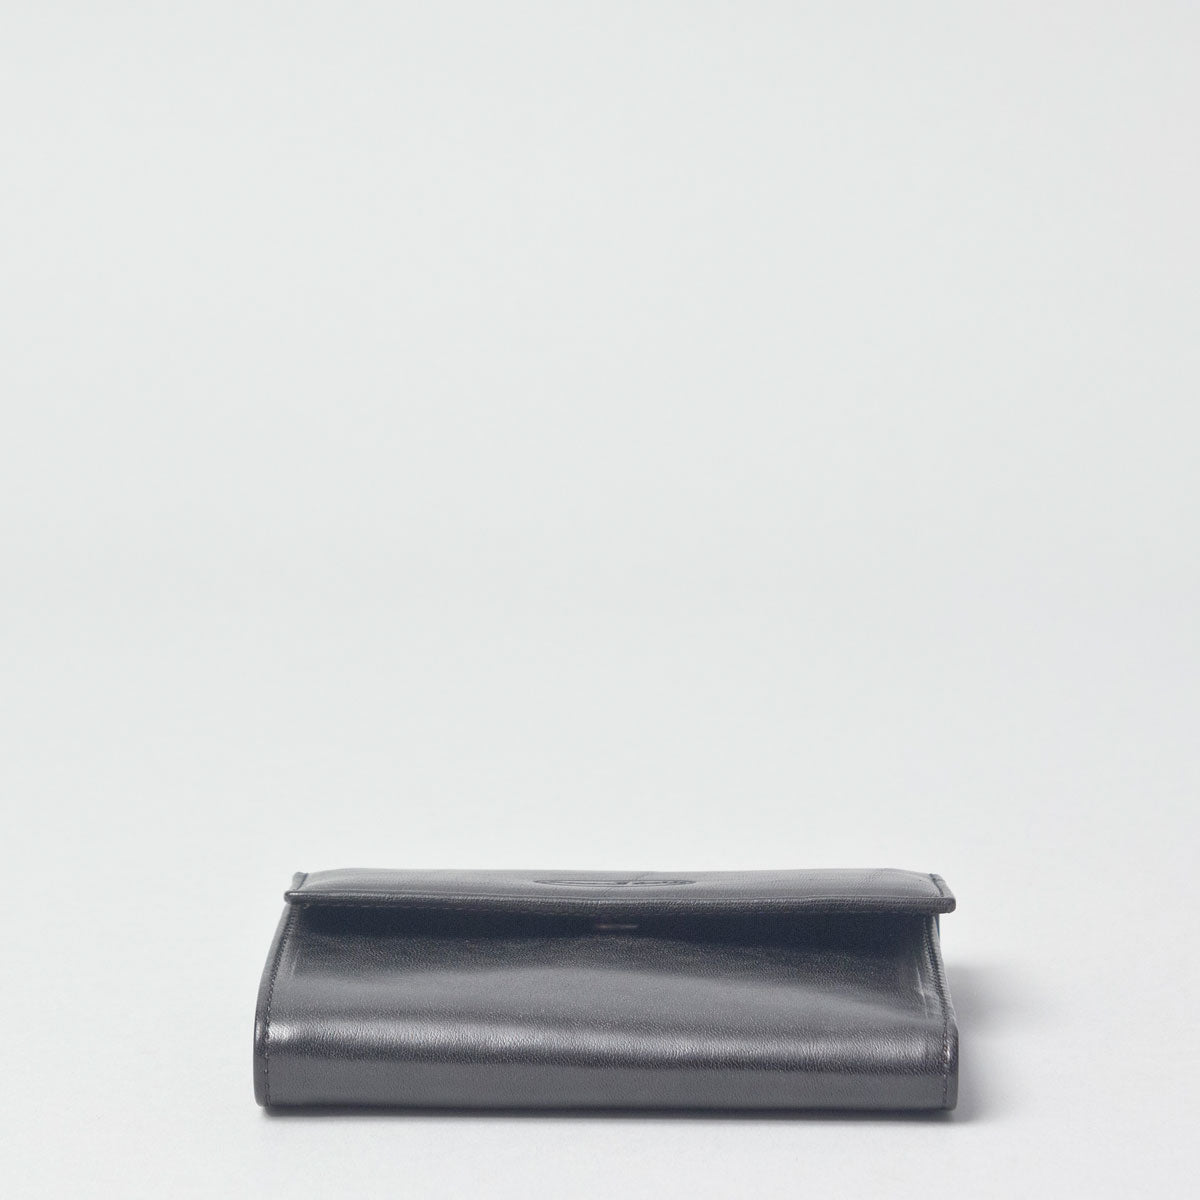 Image 3 of the 'Cetona' Black Veg-Tanned Multipurpose Wallet